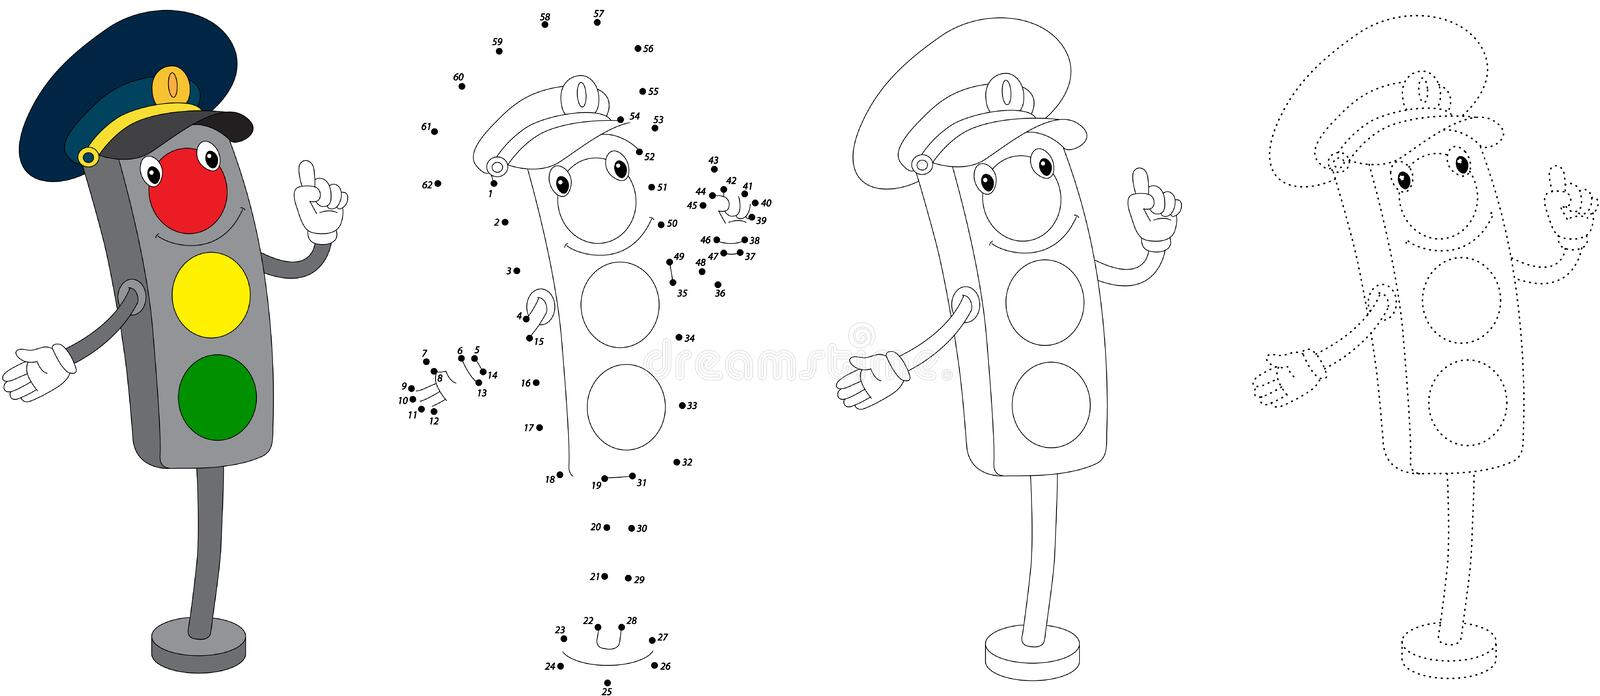 Cartoon traffic light. Vector illustration. Dot to dot game for stock illustration